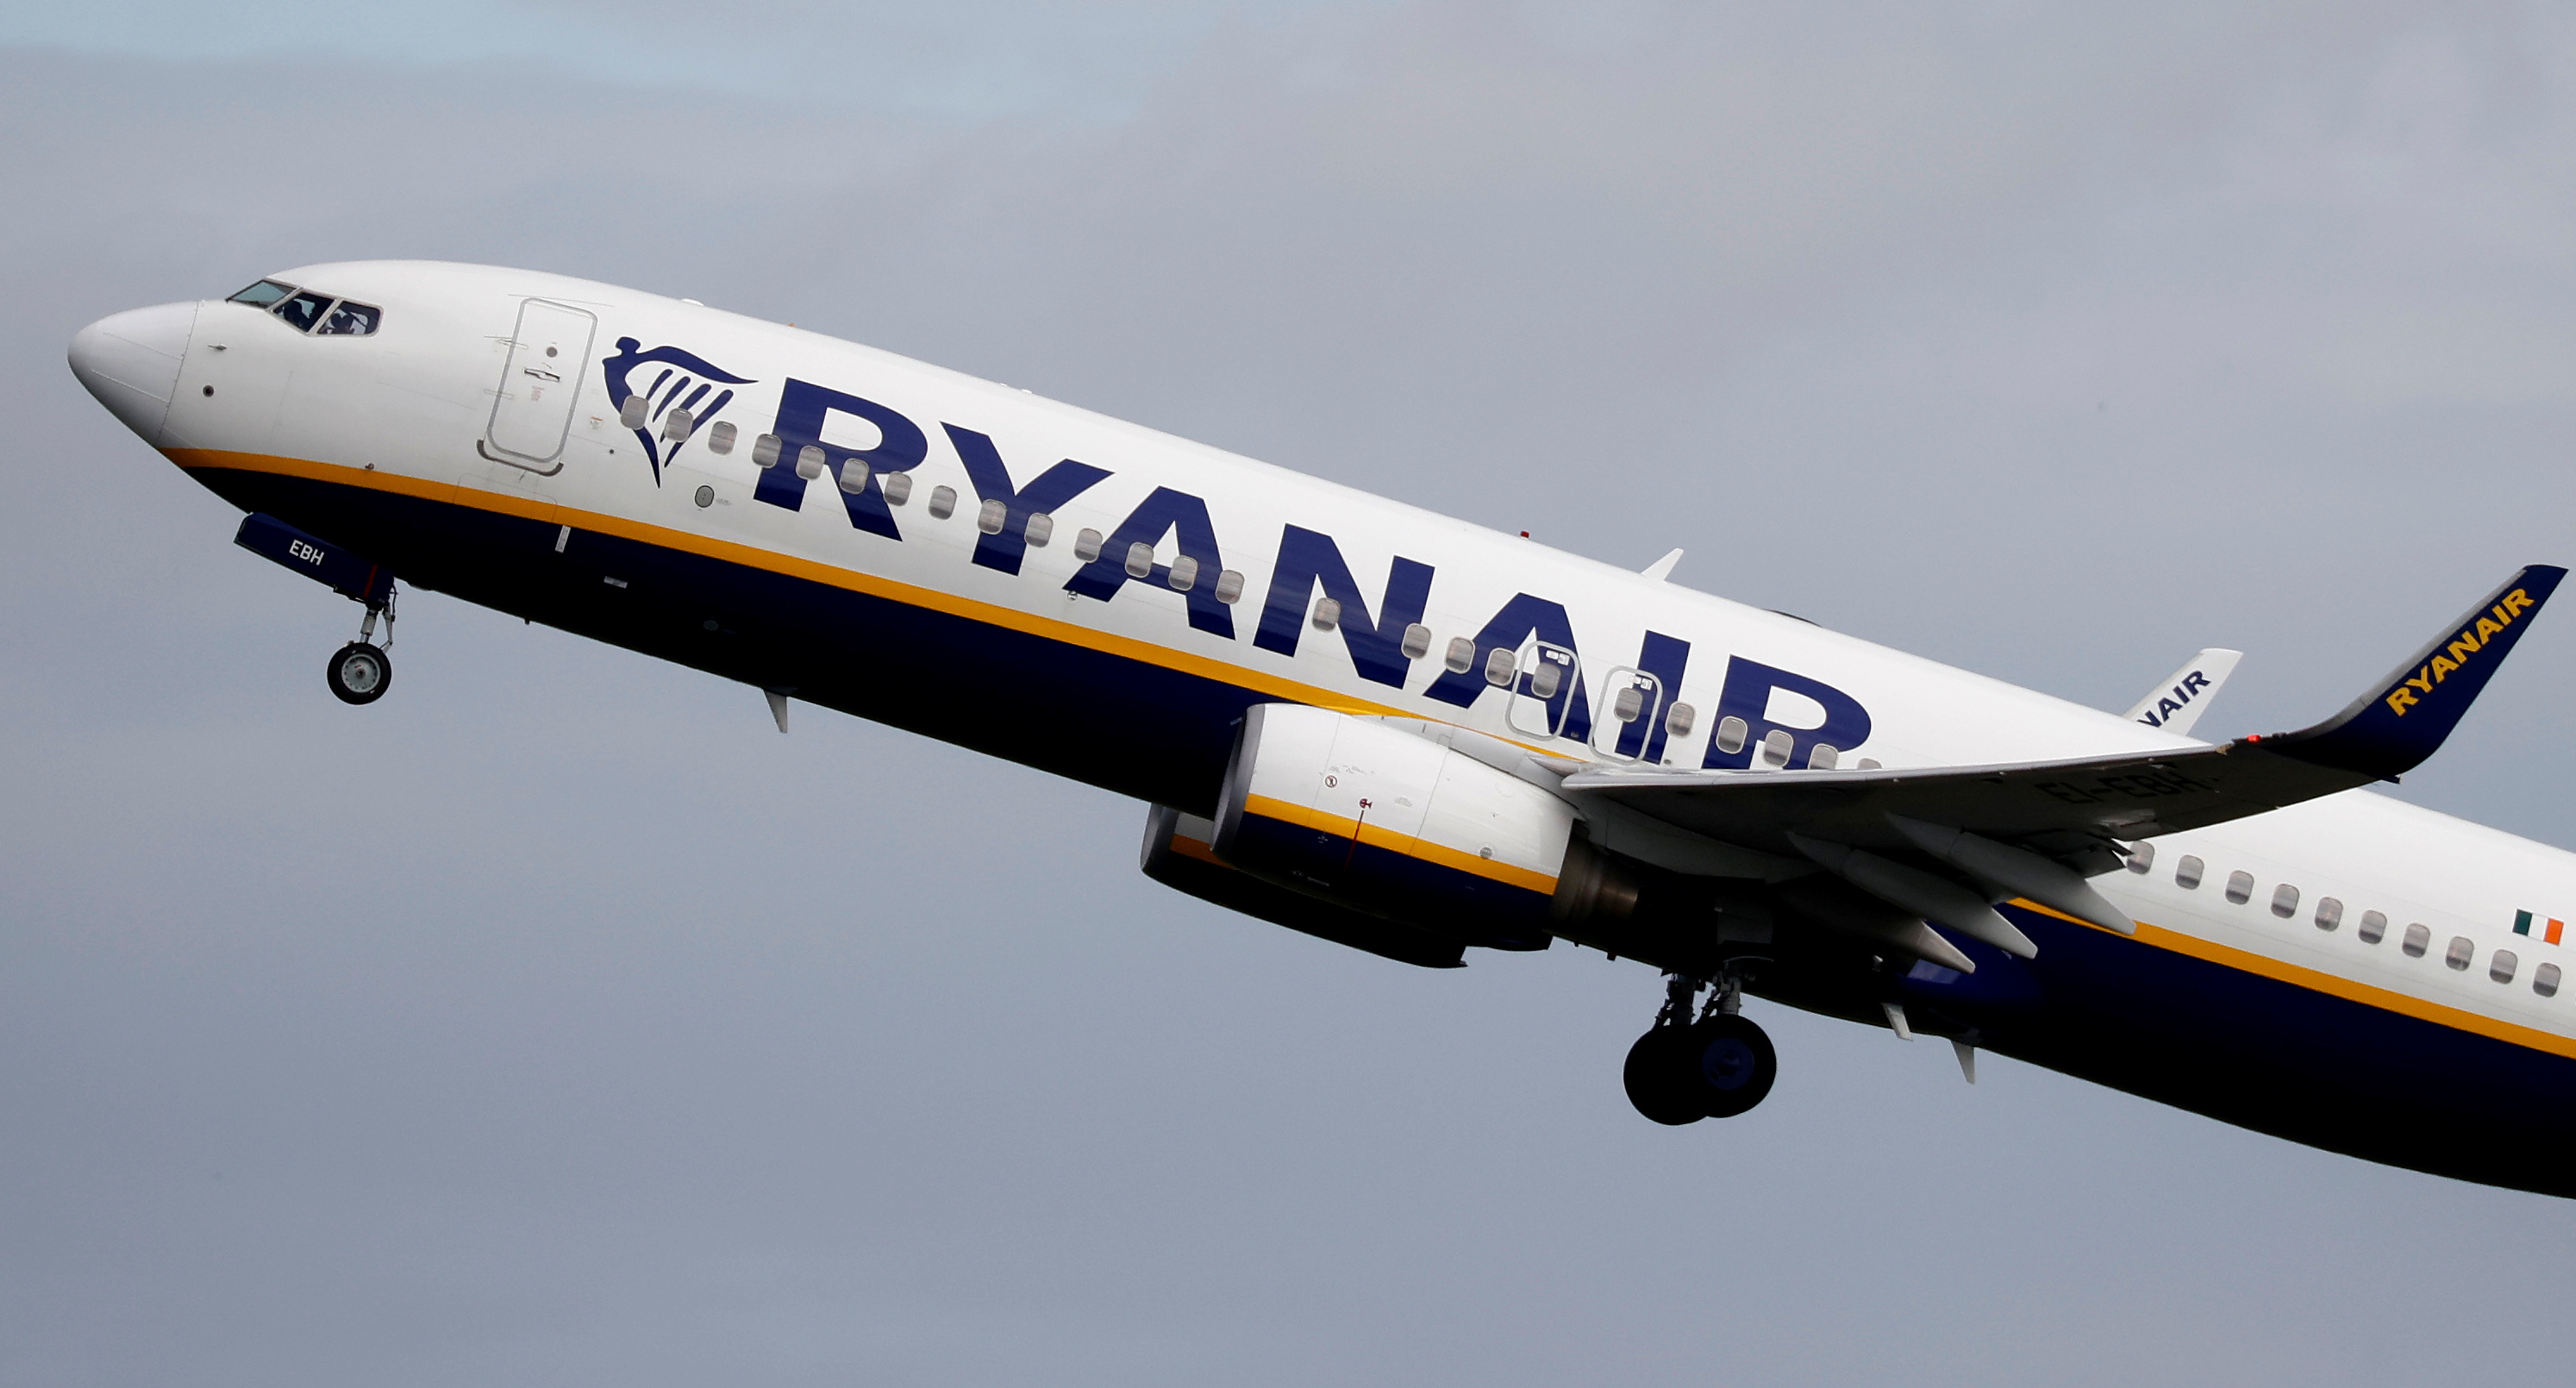 A Ryanair plane takes off from Manchester Airport as the spread of the coronavirus disease (COVID-19) continues in Manchester, Britain June 21, 2020. Picture taken June 21, 2020. REUTERS/Phil Noble